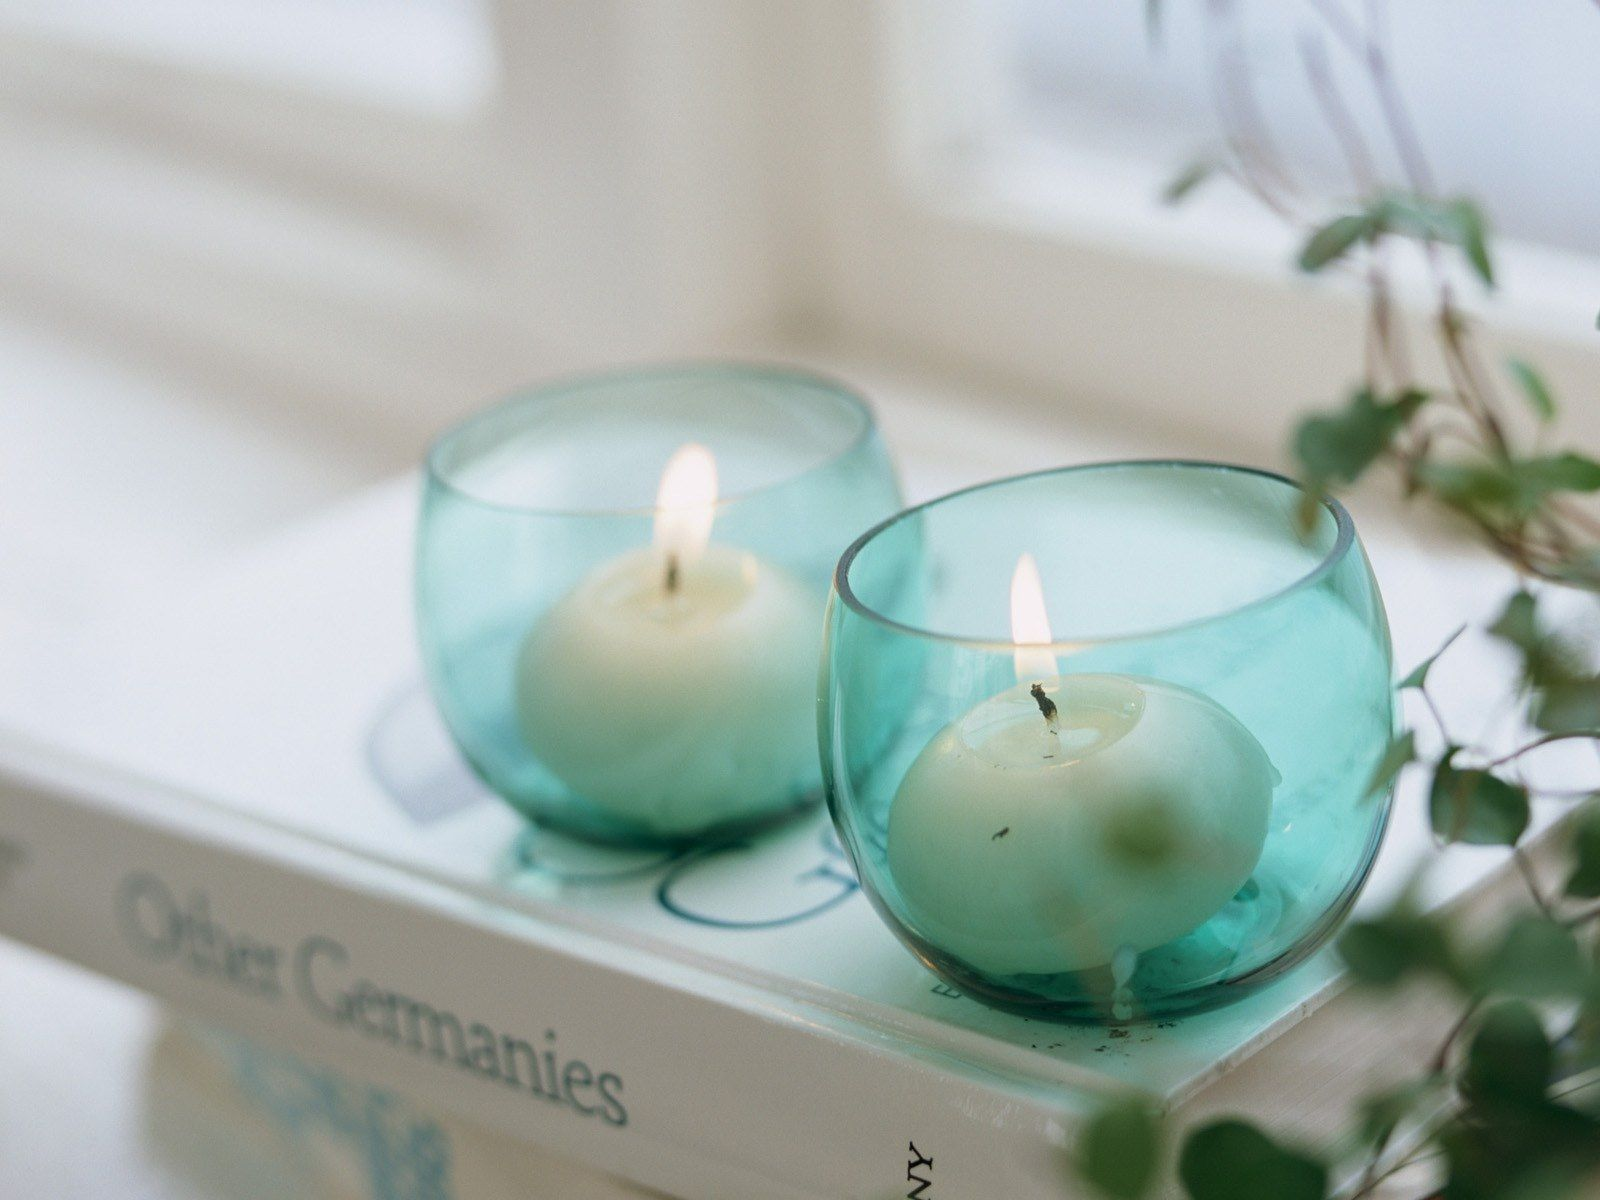 Candles Wallpapers 19 Hd Wallpapers Candles Wallpaper Candles Beautiful Candles